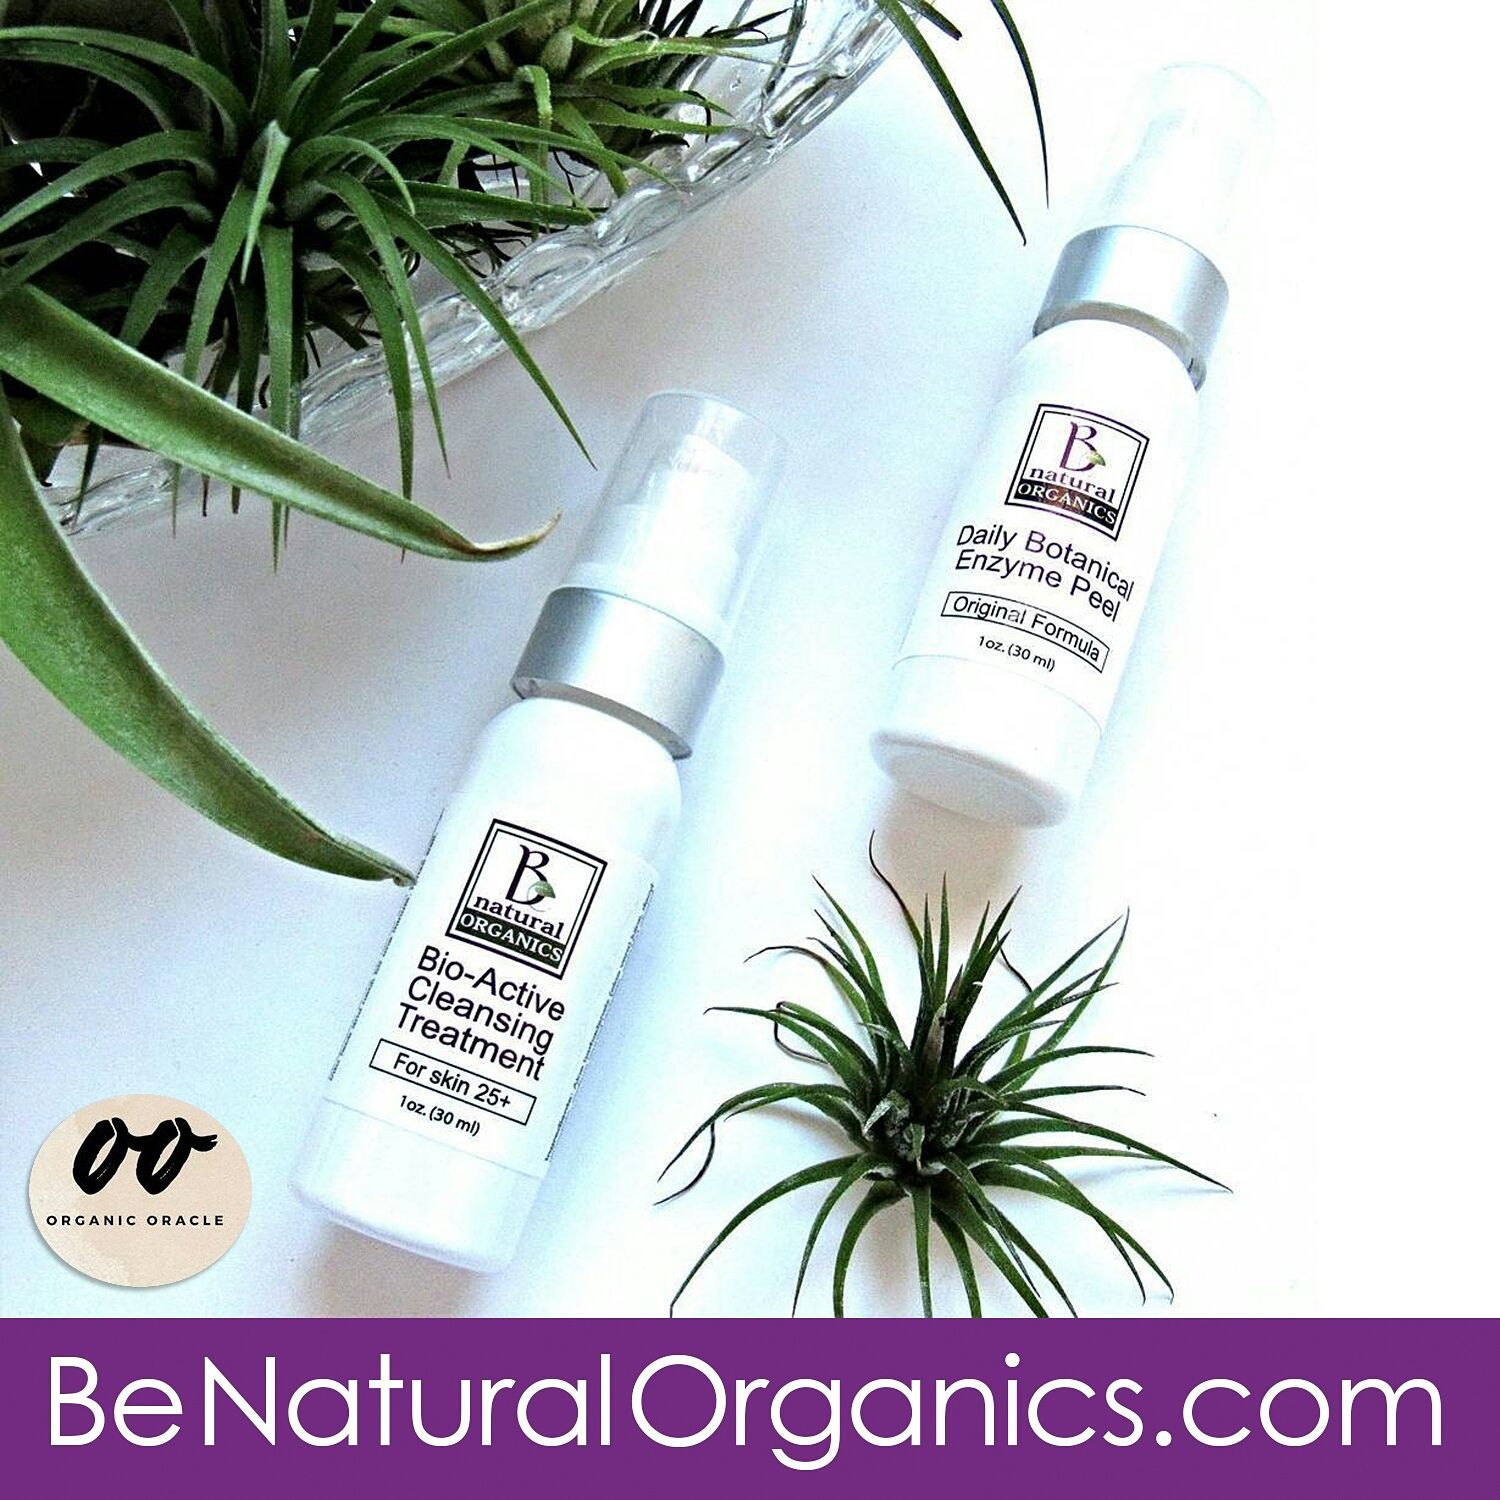 Products of the week: Bio-Active Cleansing Treatment (great for anti-aging) & Daily Botanical Enzyme Peel (great for acne)   Both best-sellers   📸credit: @organicoracle  #BeNaturalOrganics   #OrganicSkinCare  #SkinCare #Organic #Acne #AntiAging #AcneTreatment #AntiAgingTreatment #ProductOfTheWeek